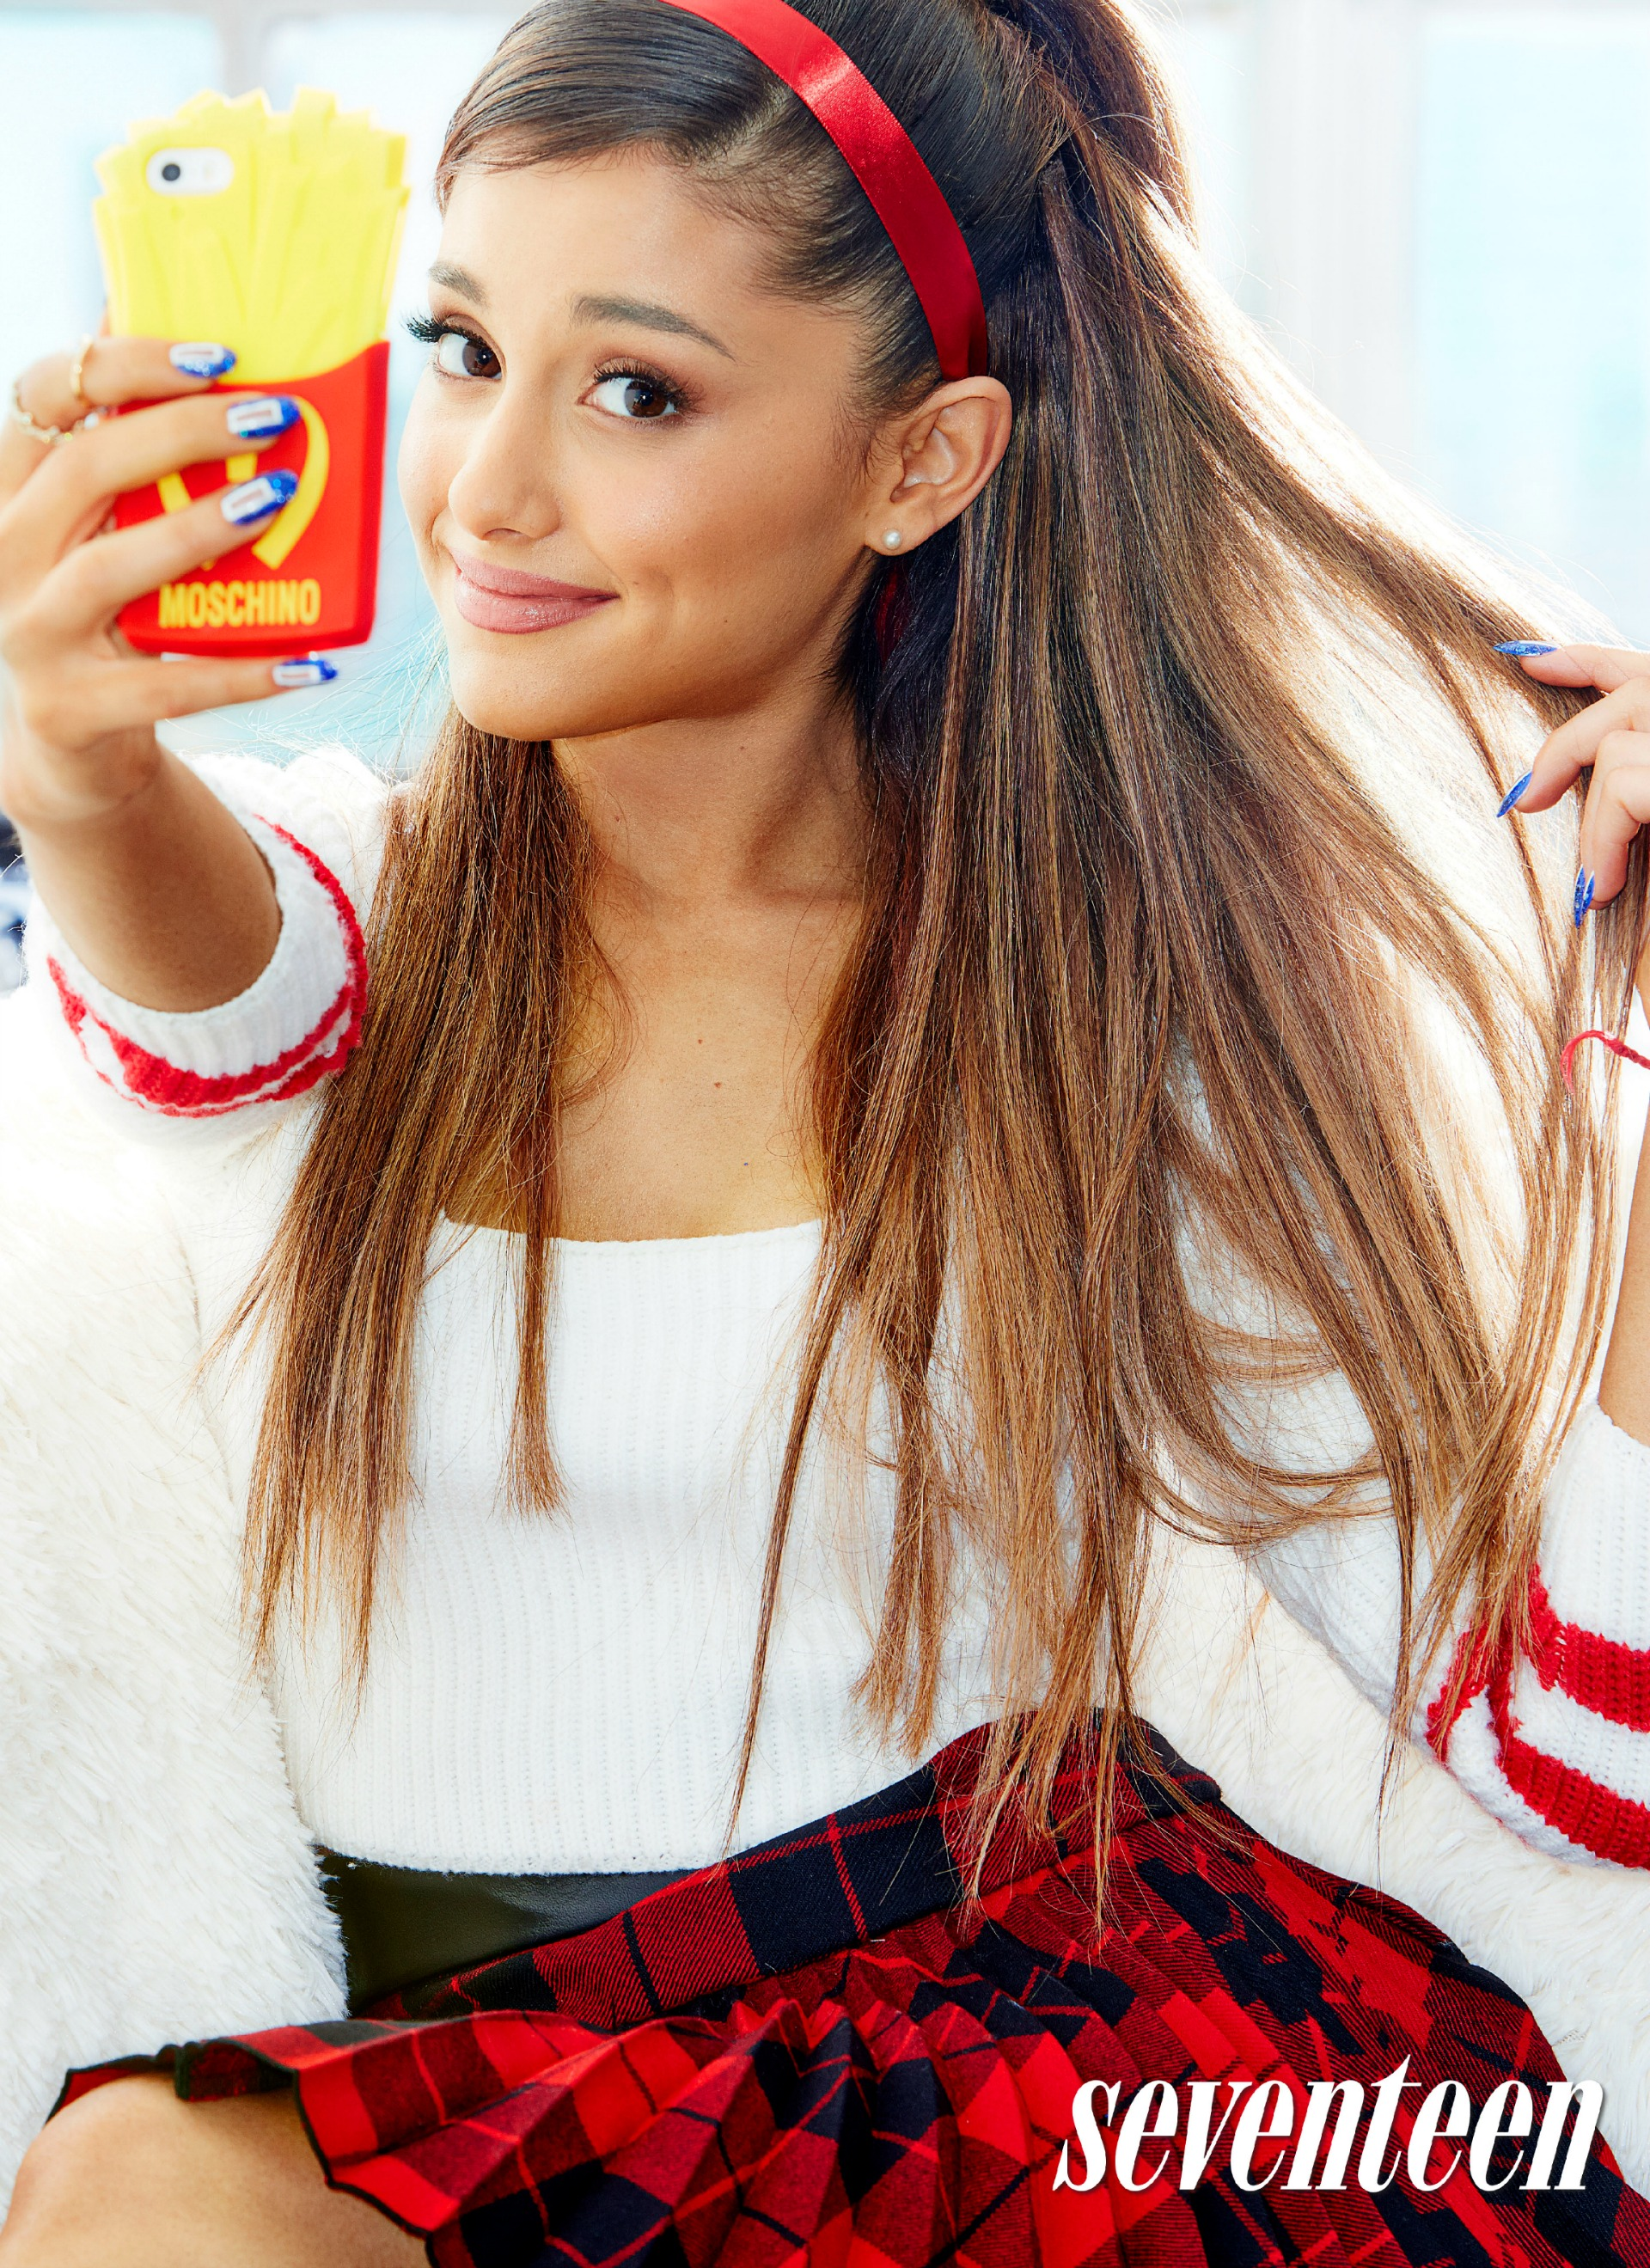 Ariana Grande opens up about her family as Seventeen's September cover girl